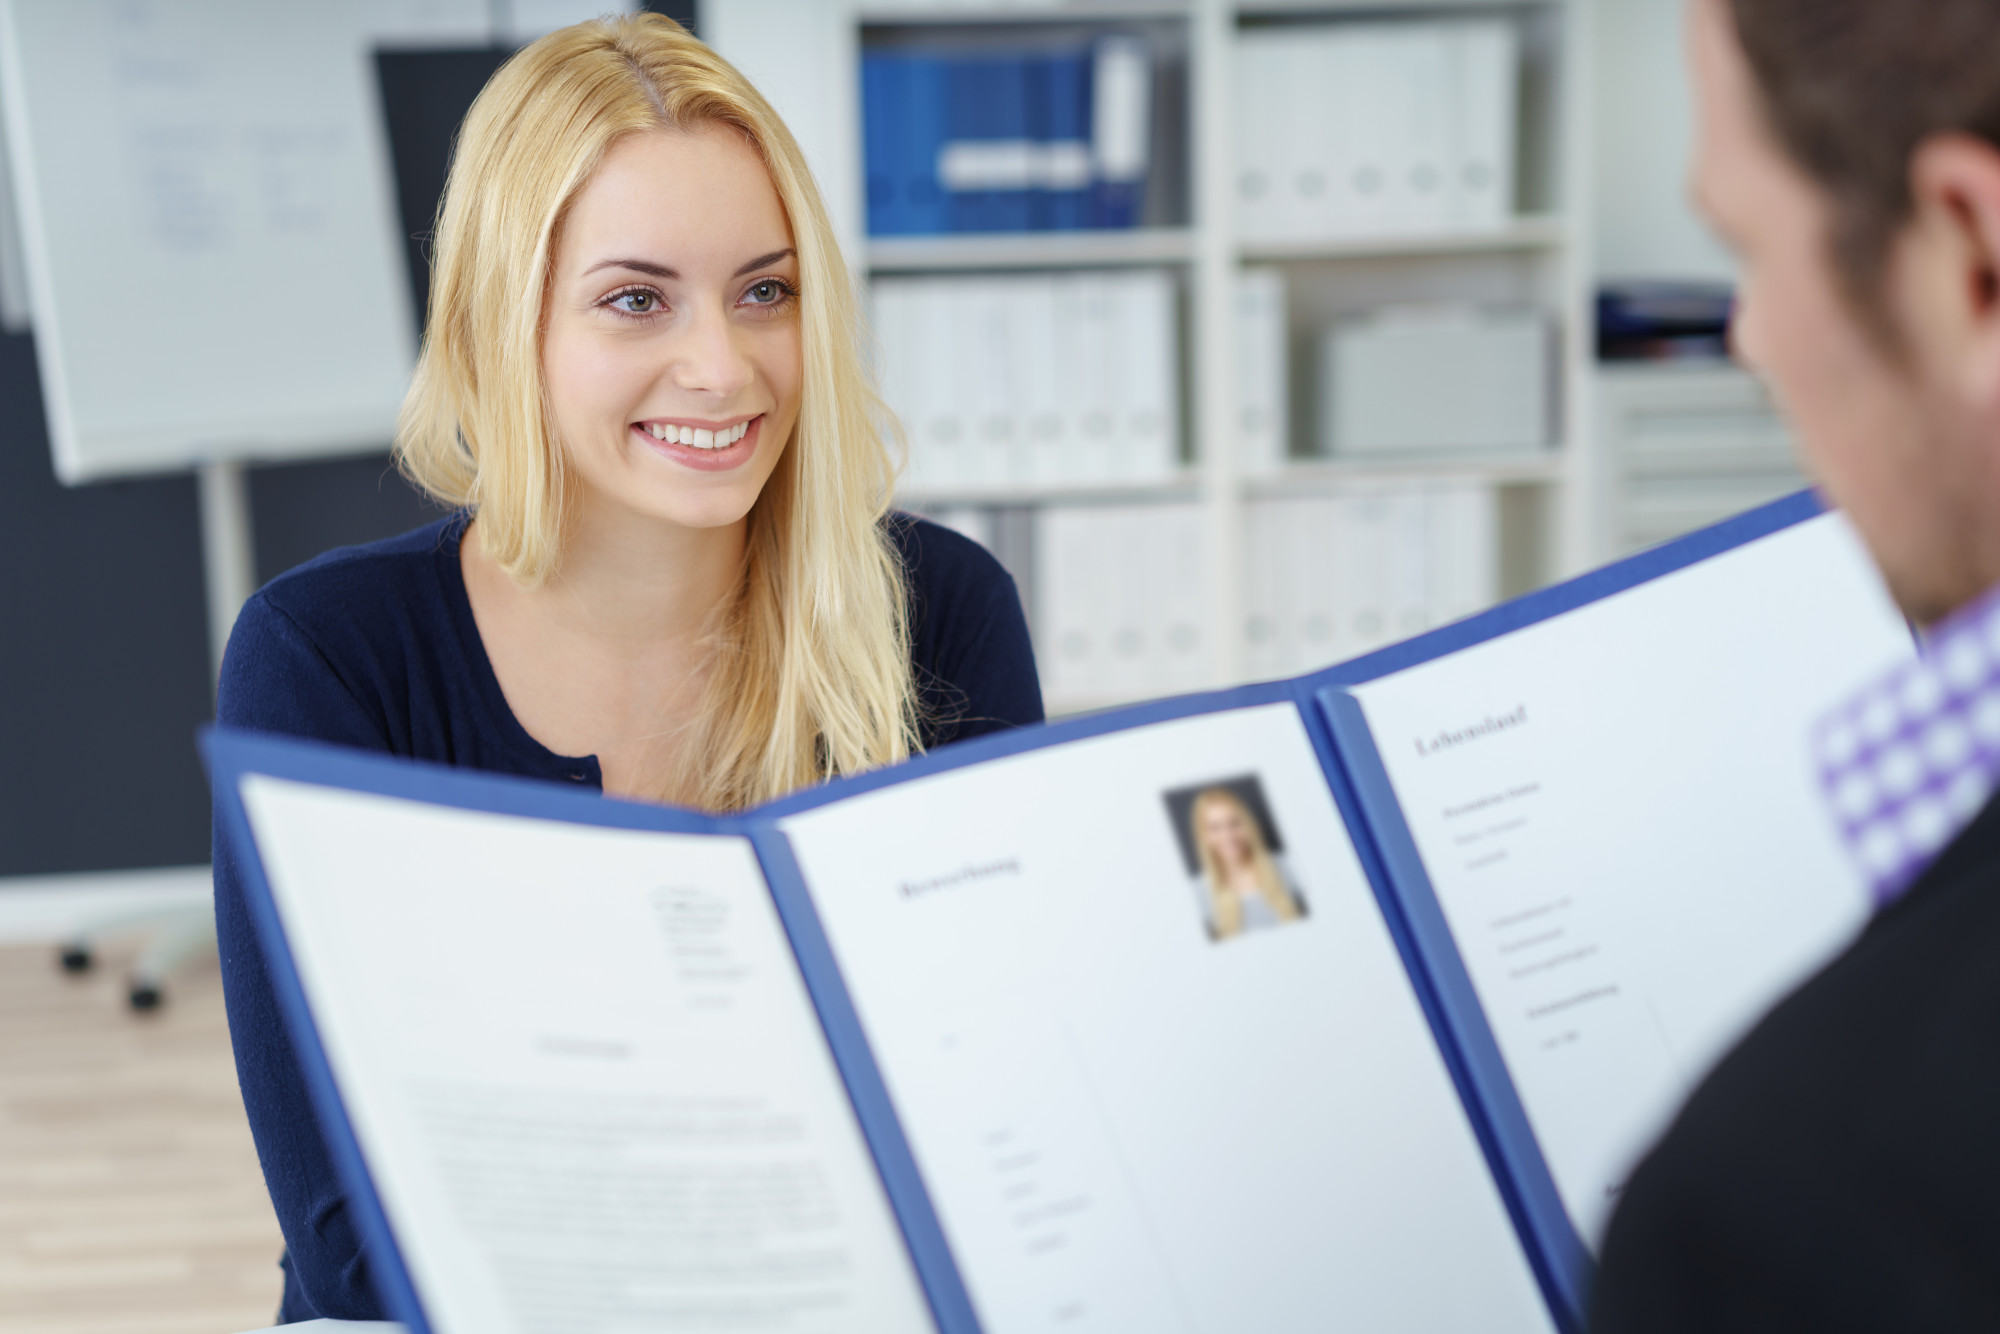 5 Most Successful Recruitment Strategies for Small Business Owners